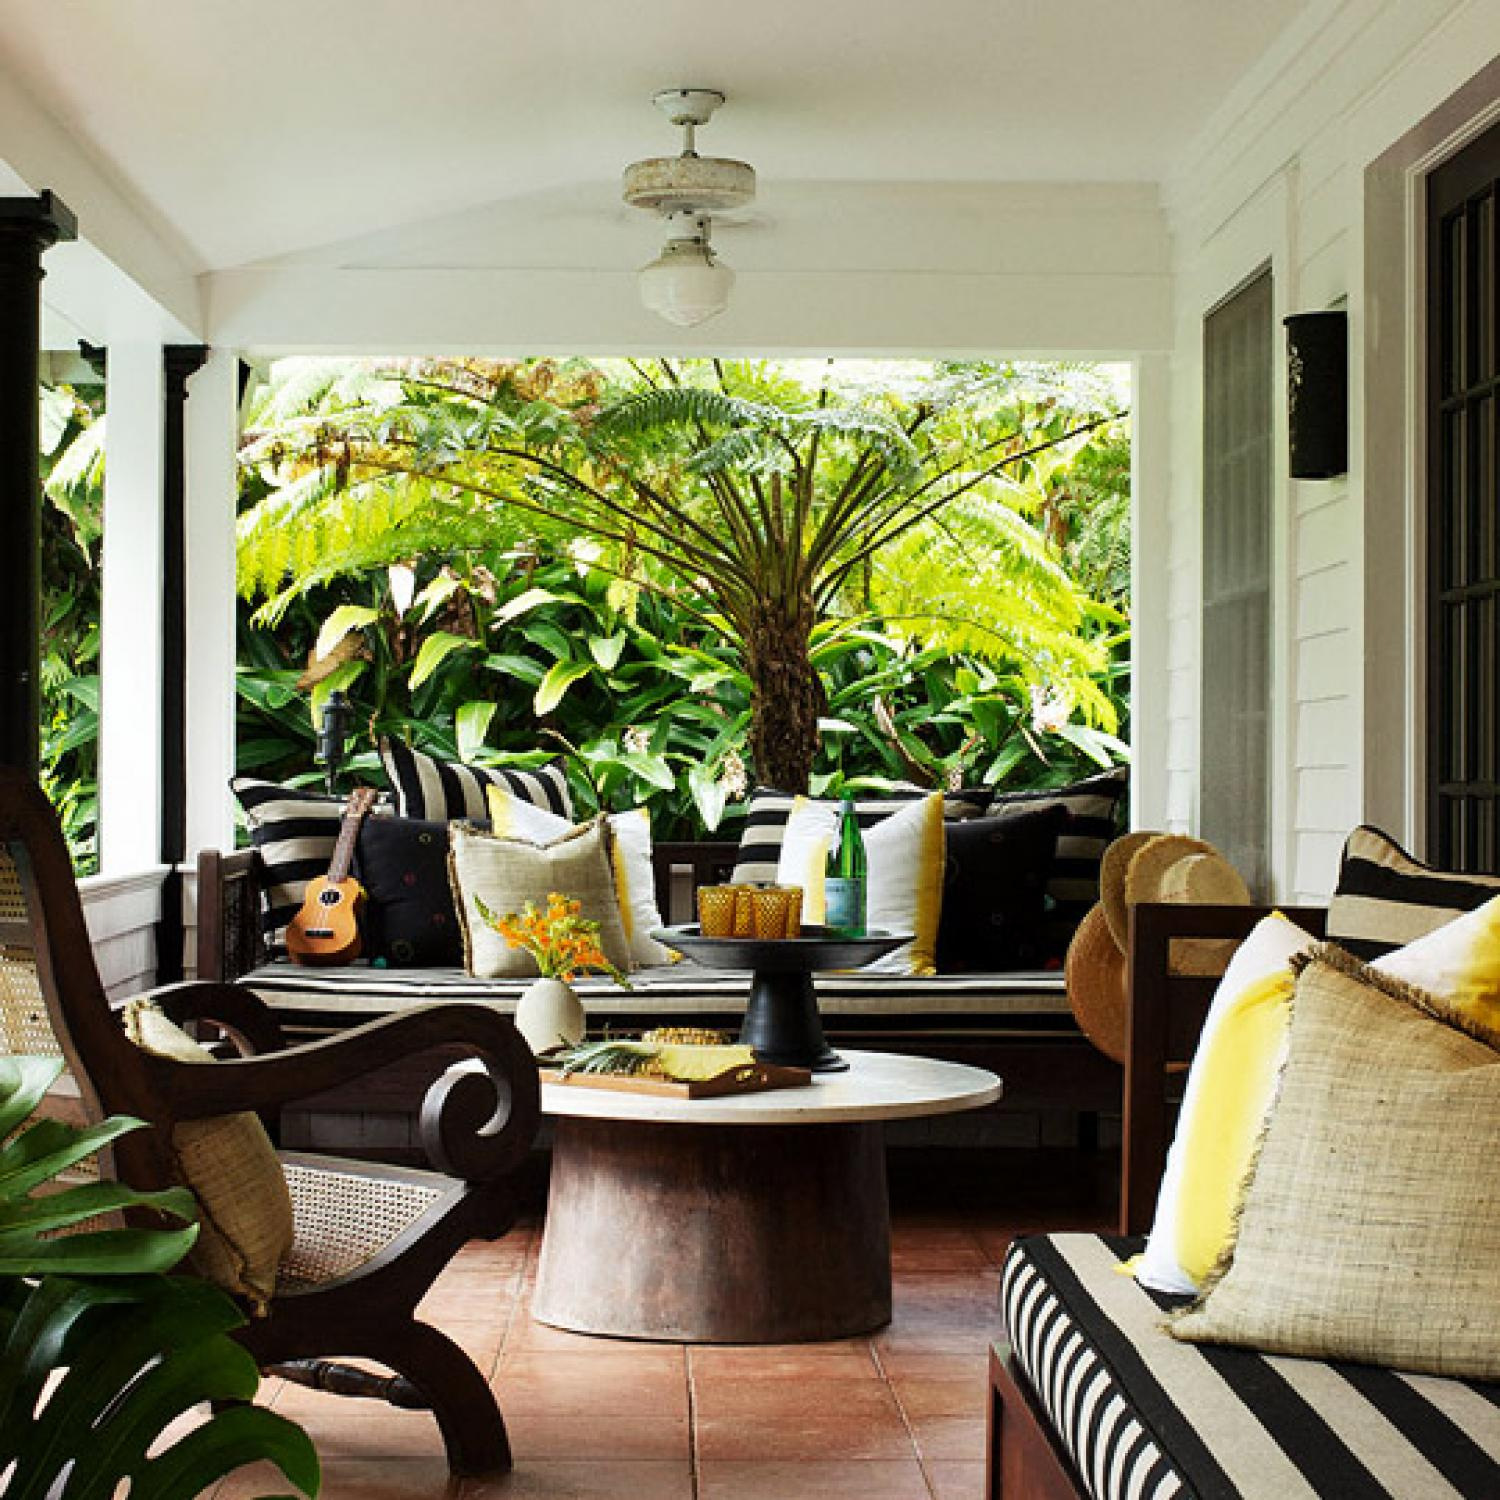 Home Design Decorating Ideas: Tropical Traditional Home